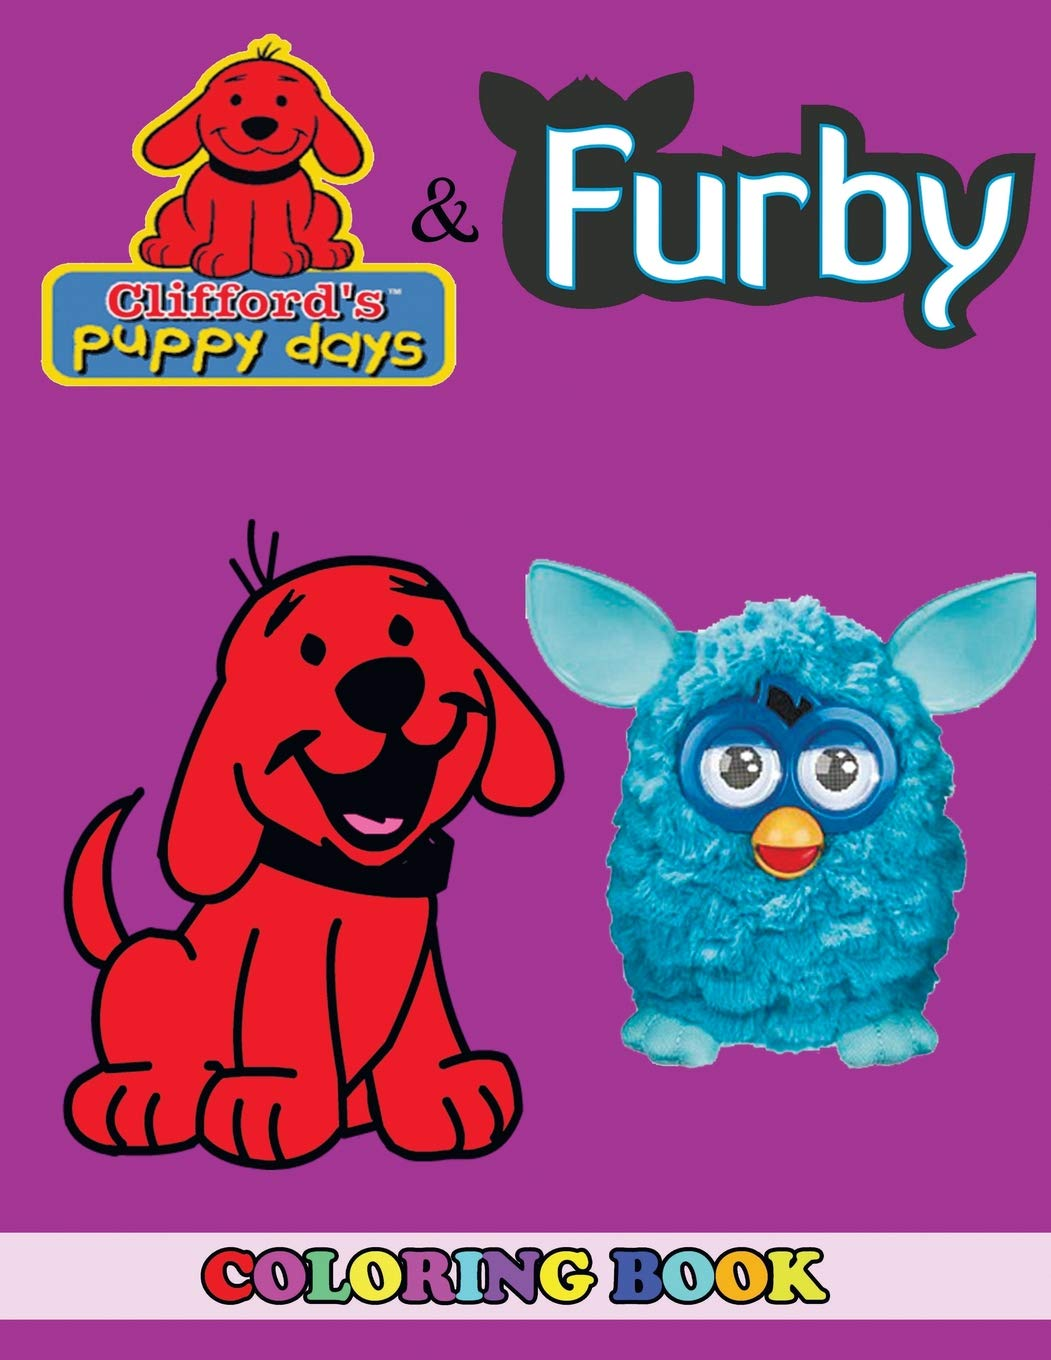 Amazon.com: Clifford\'s Puppy Days and Furby Coloring Book: 2 ...